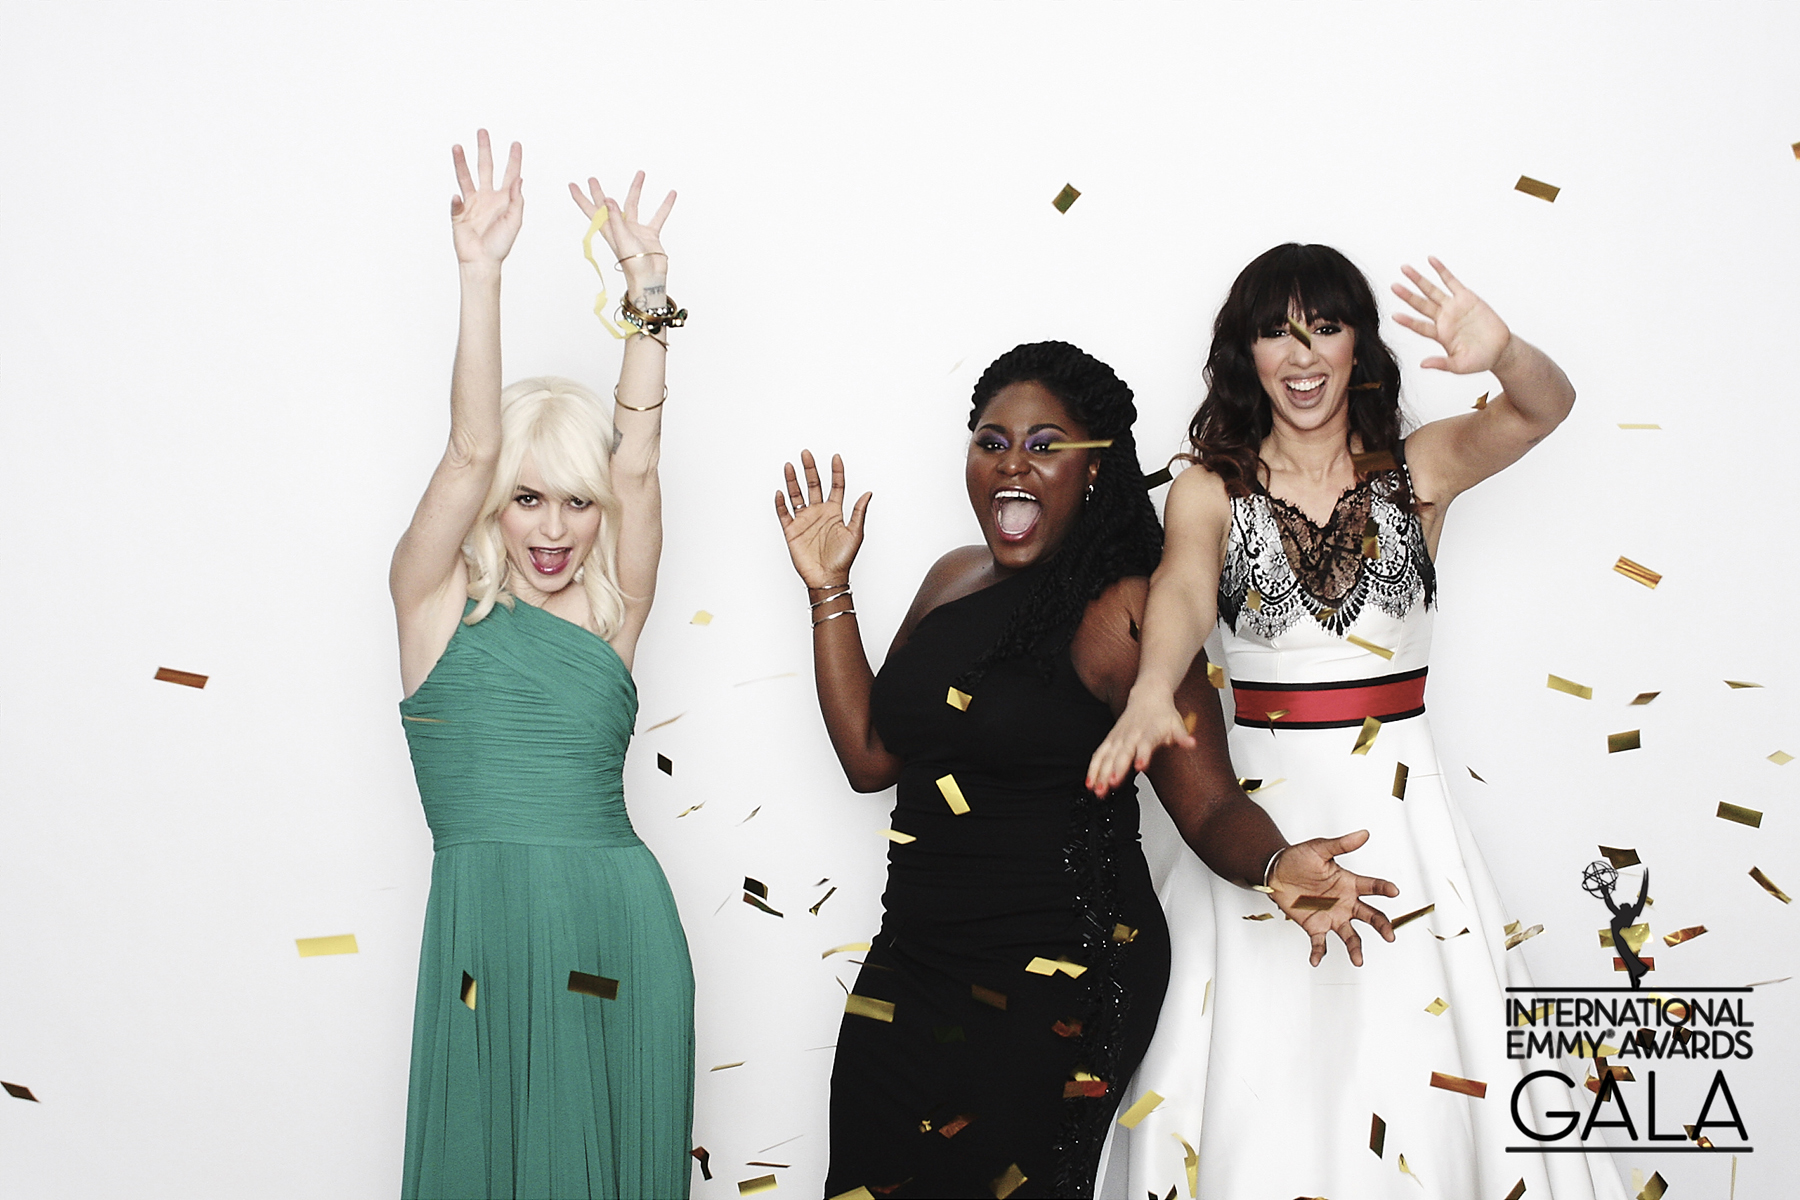 New York Photobooth International Emmy Awards Orange is the new black